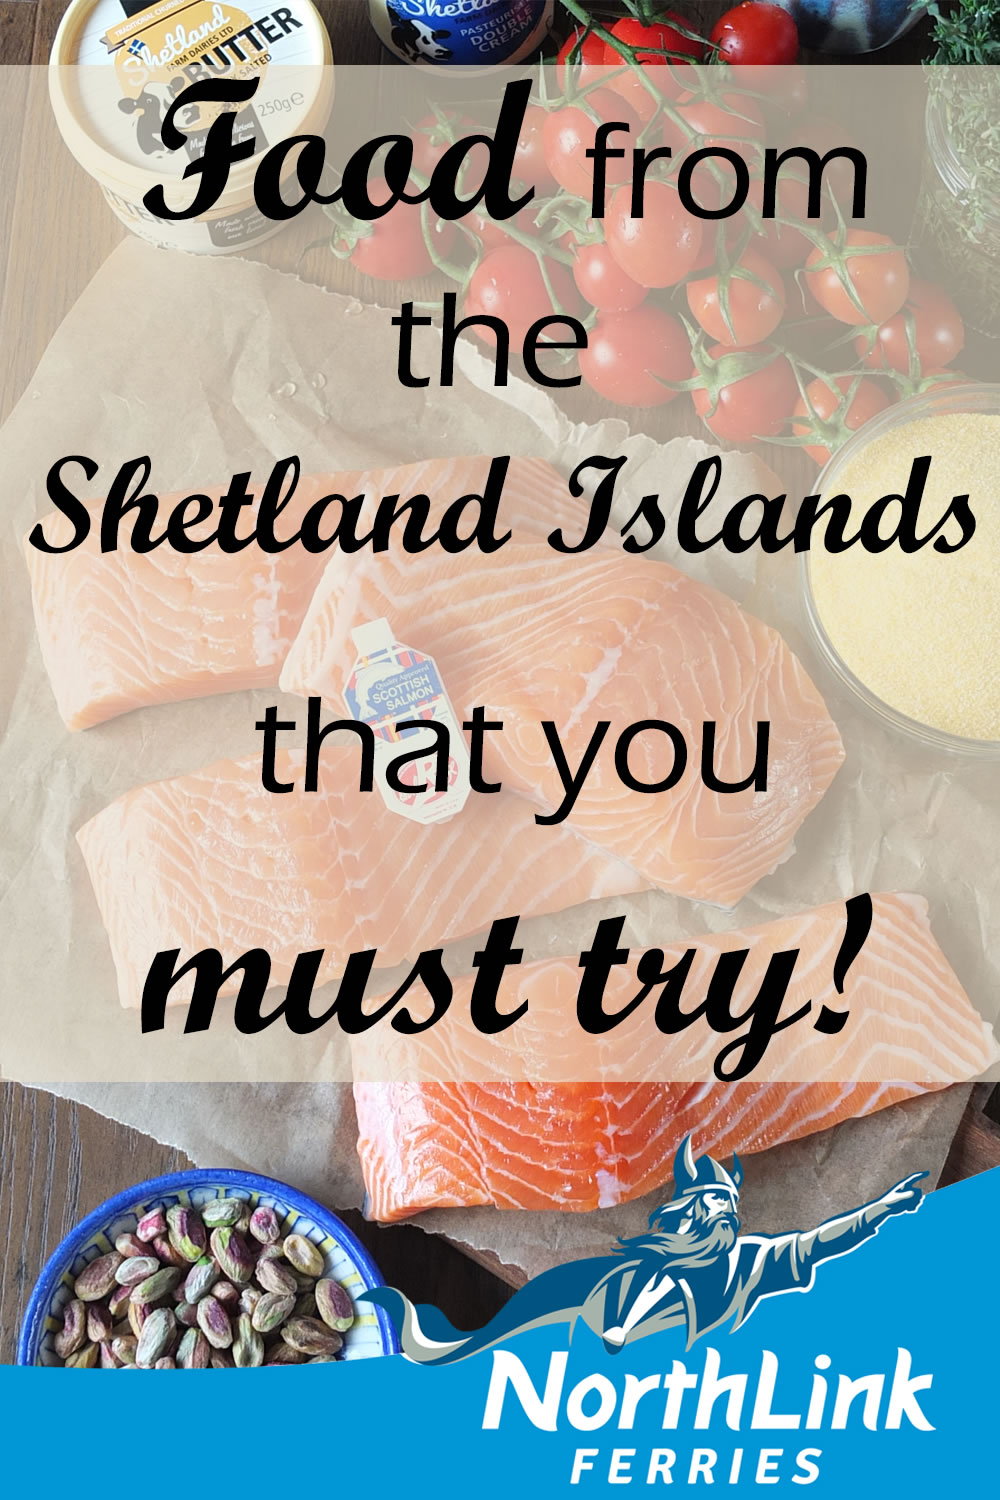 Food from the Shetland Islands that you must try!